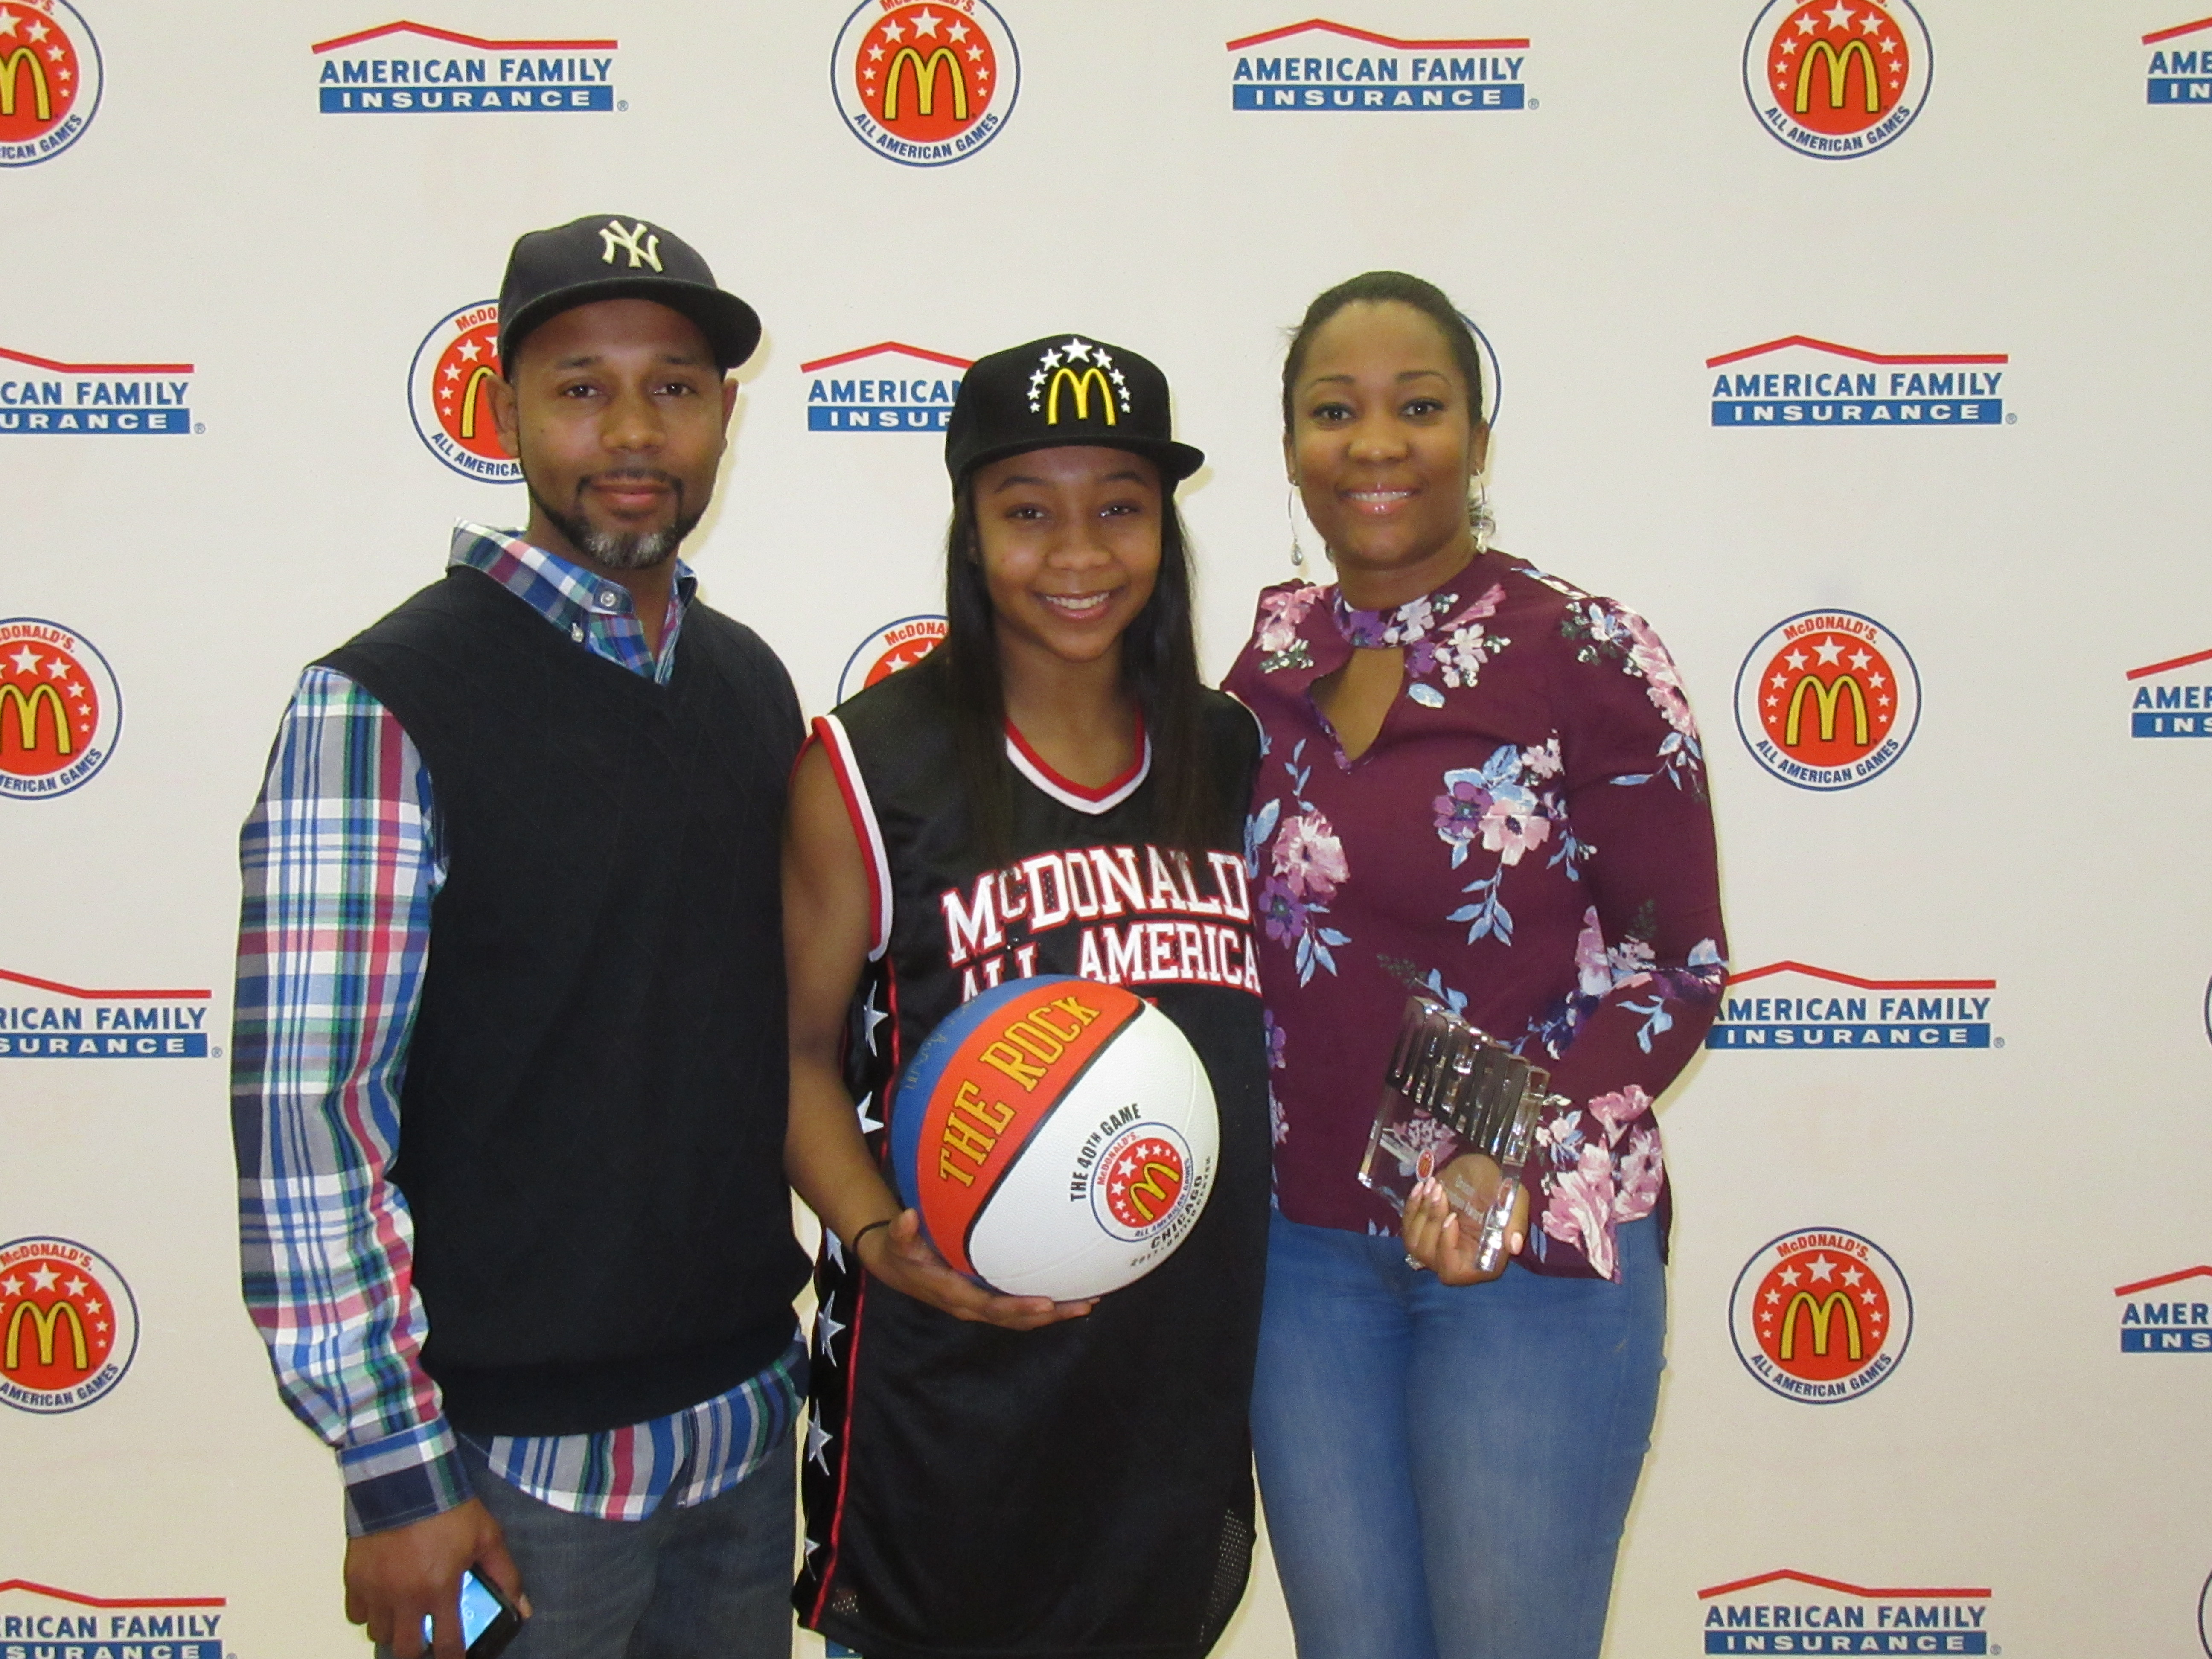 Anastasia Hayes presented her parents, Arnett and Sherry Hayes, with the Dream Champion Award. (Photo: McDAAG)